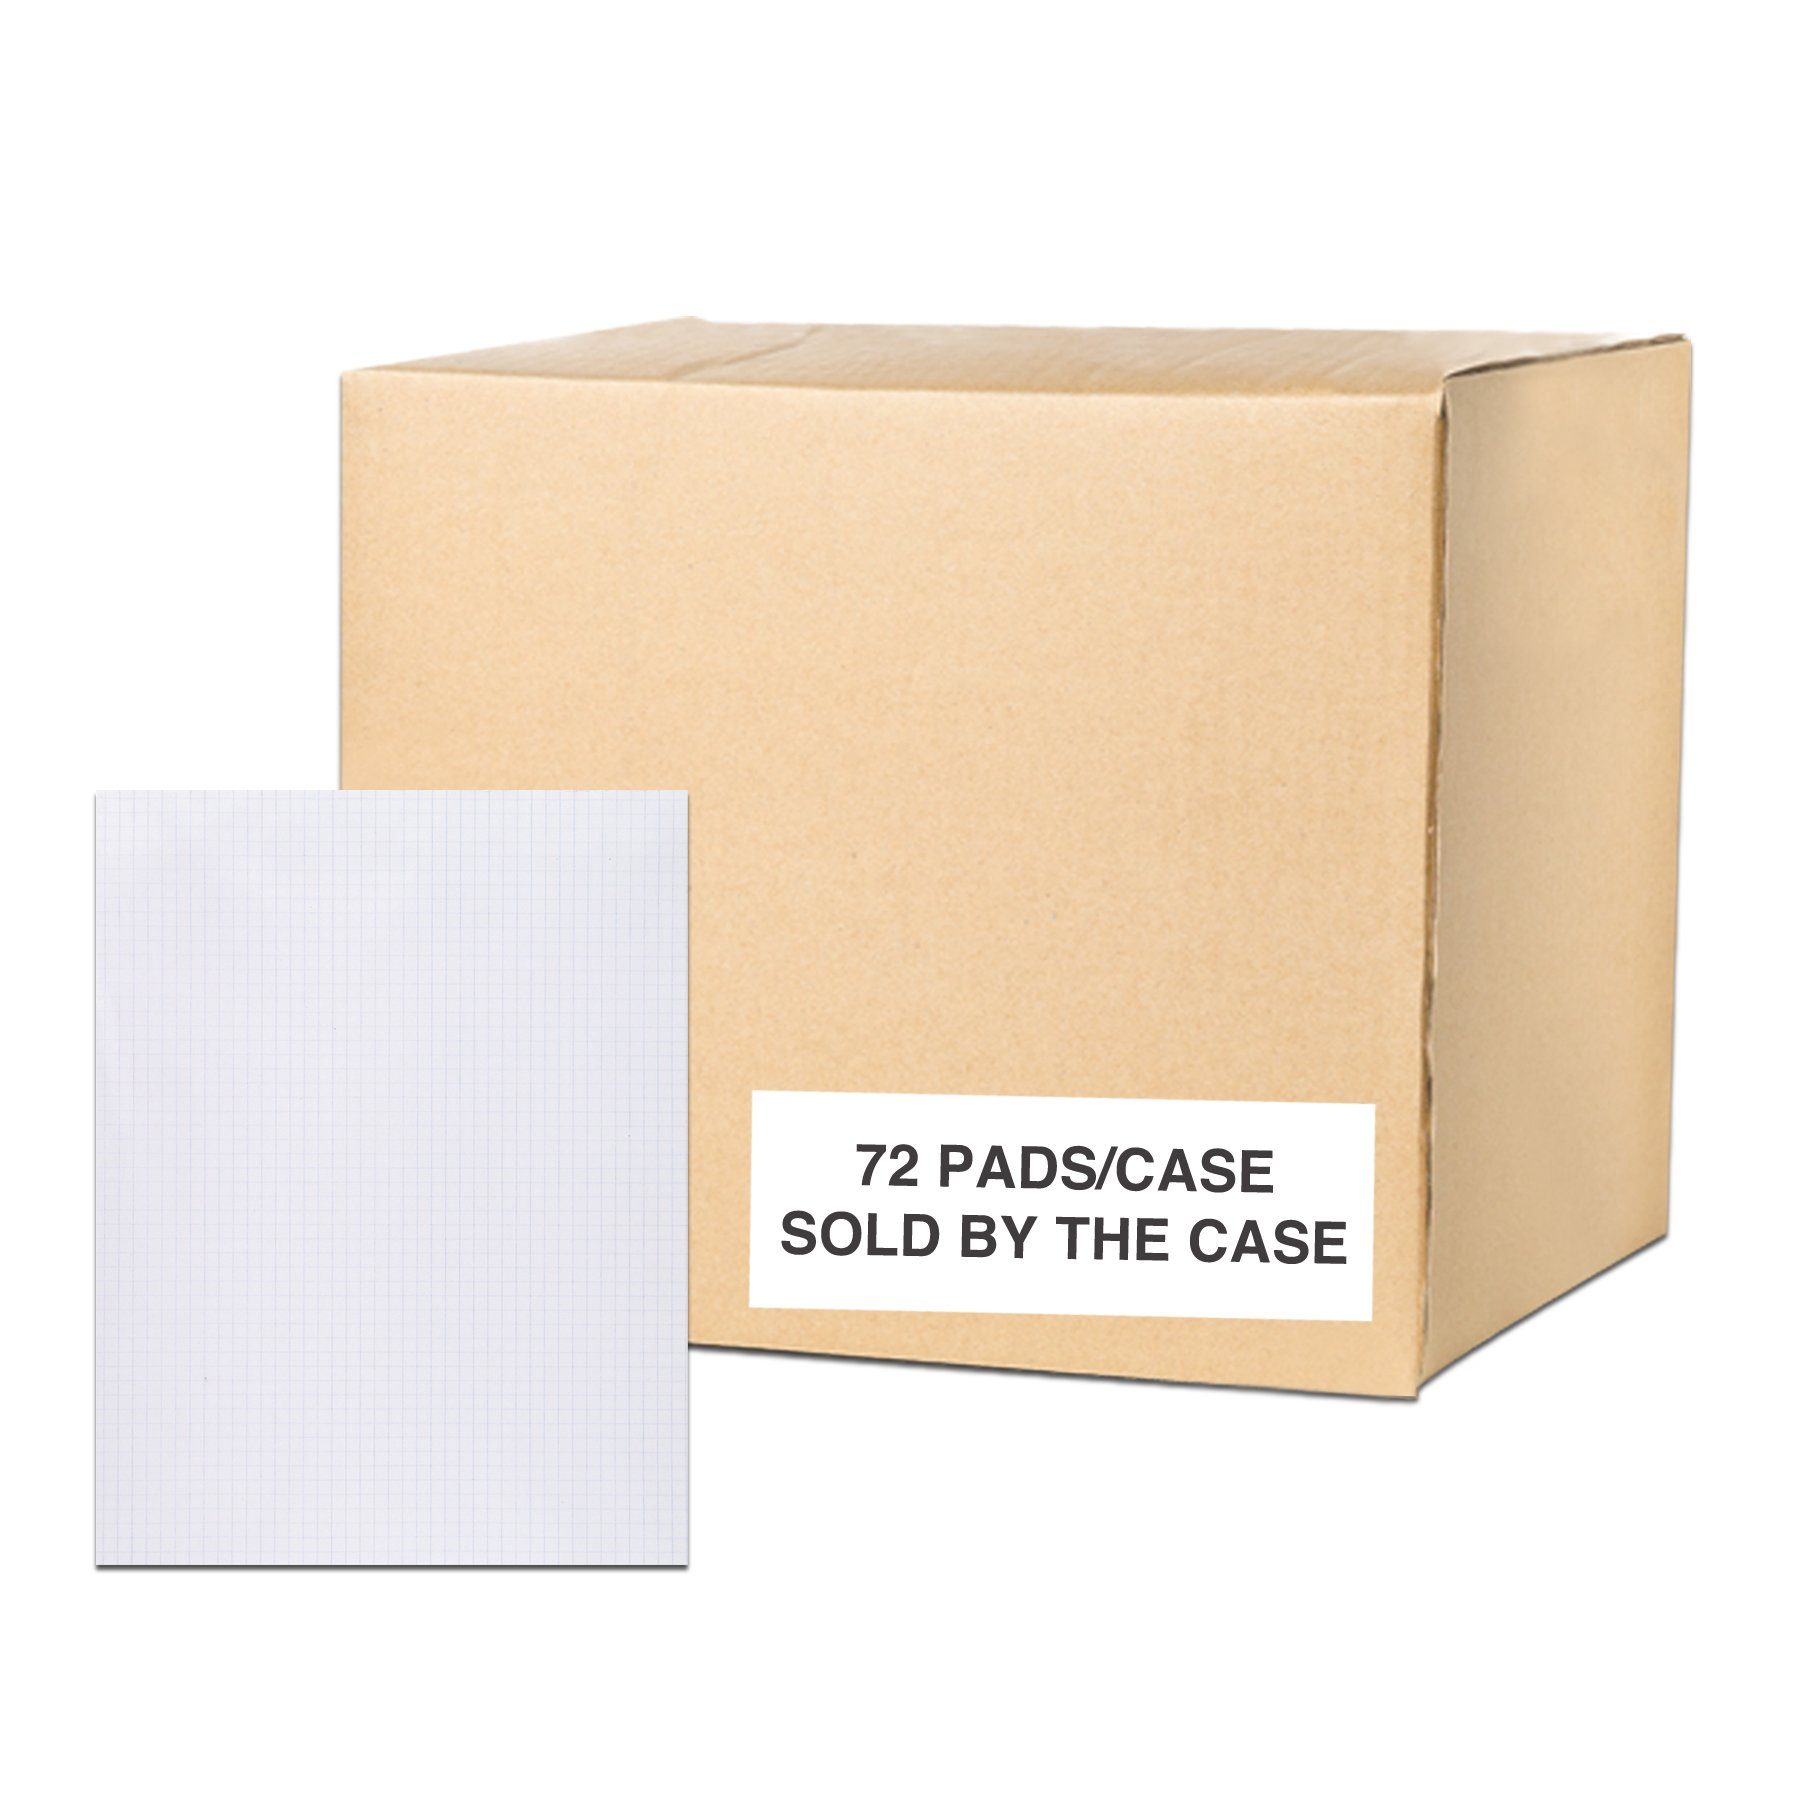 Case of 72 Gummed Pads, 8.5''x11'', 50 sheets 15# White Paper Per Pad, 12 Pads Per pack, 3-Hole Punched, glued, 5x5 graph Ruled